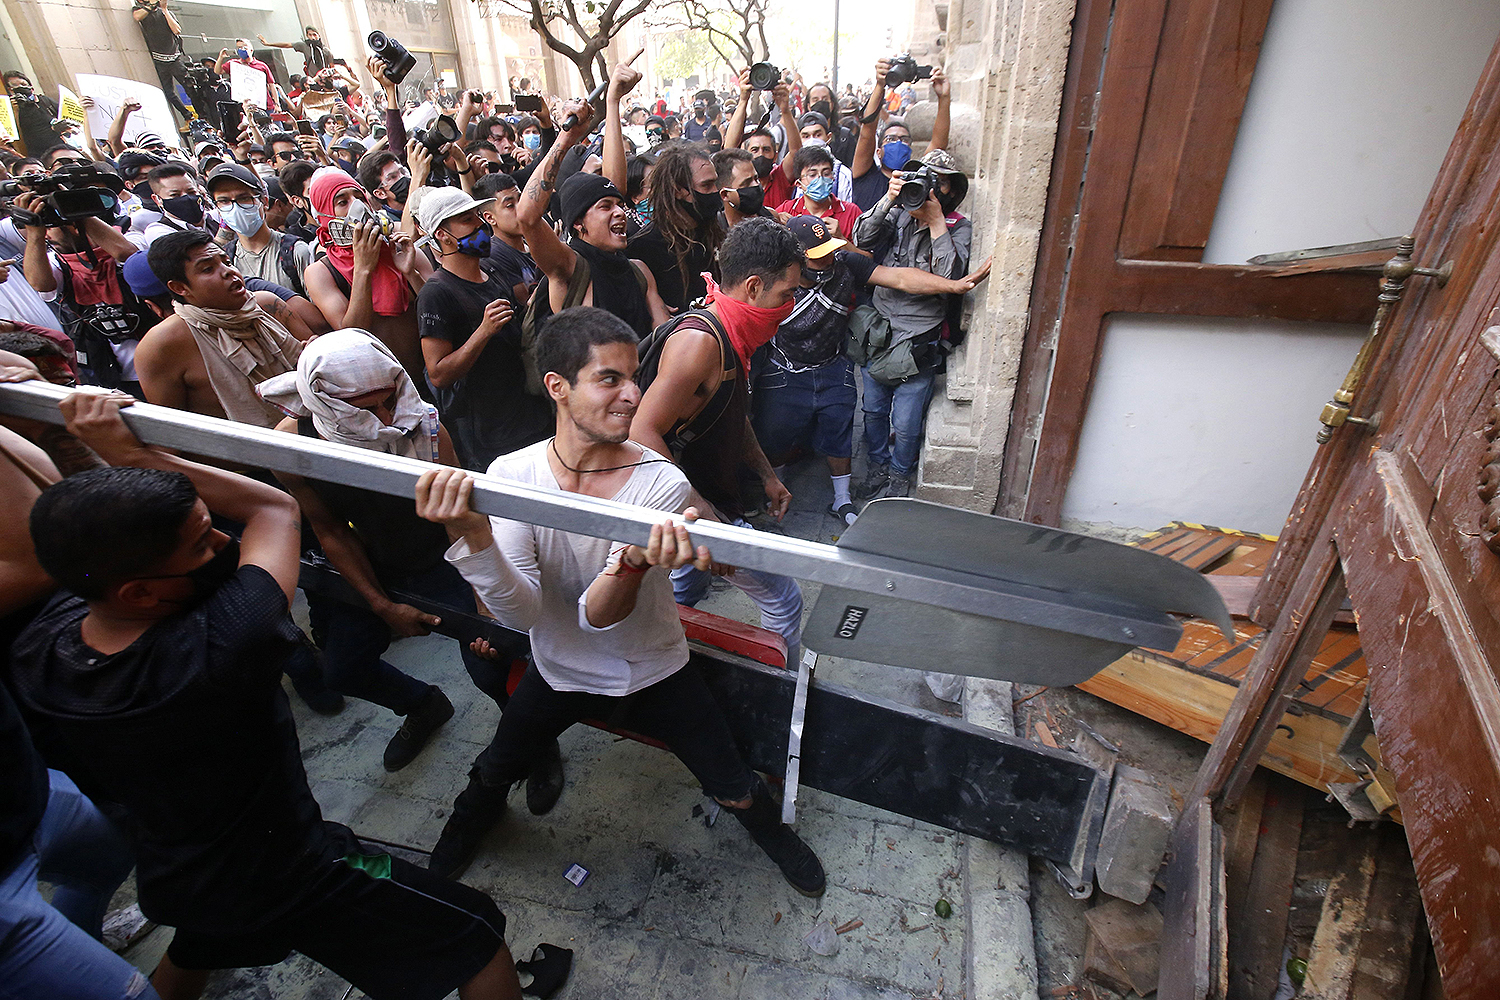 Demonstrators smash a door during a protest in Guadalajara, Mexico, on June 4 following the death of a young man while in police custody. ULISES RUIZ/AFP via Getty Images